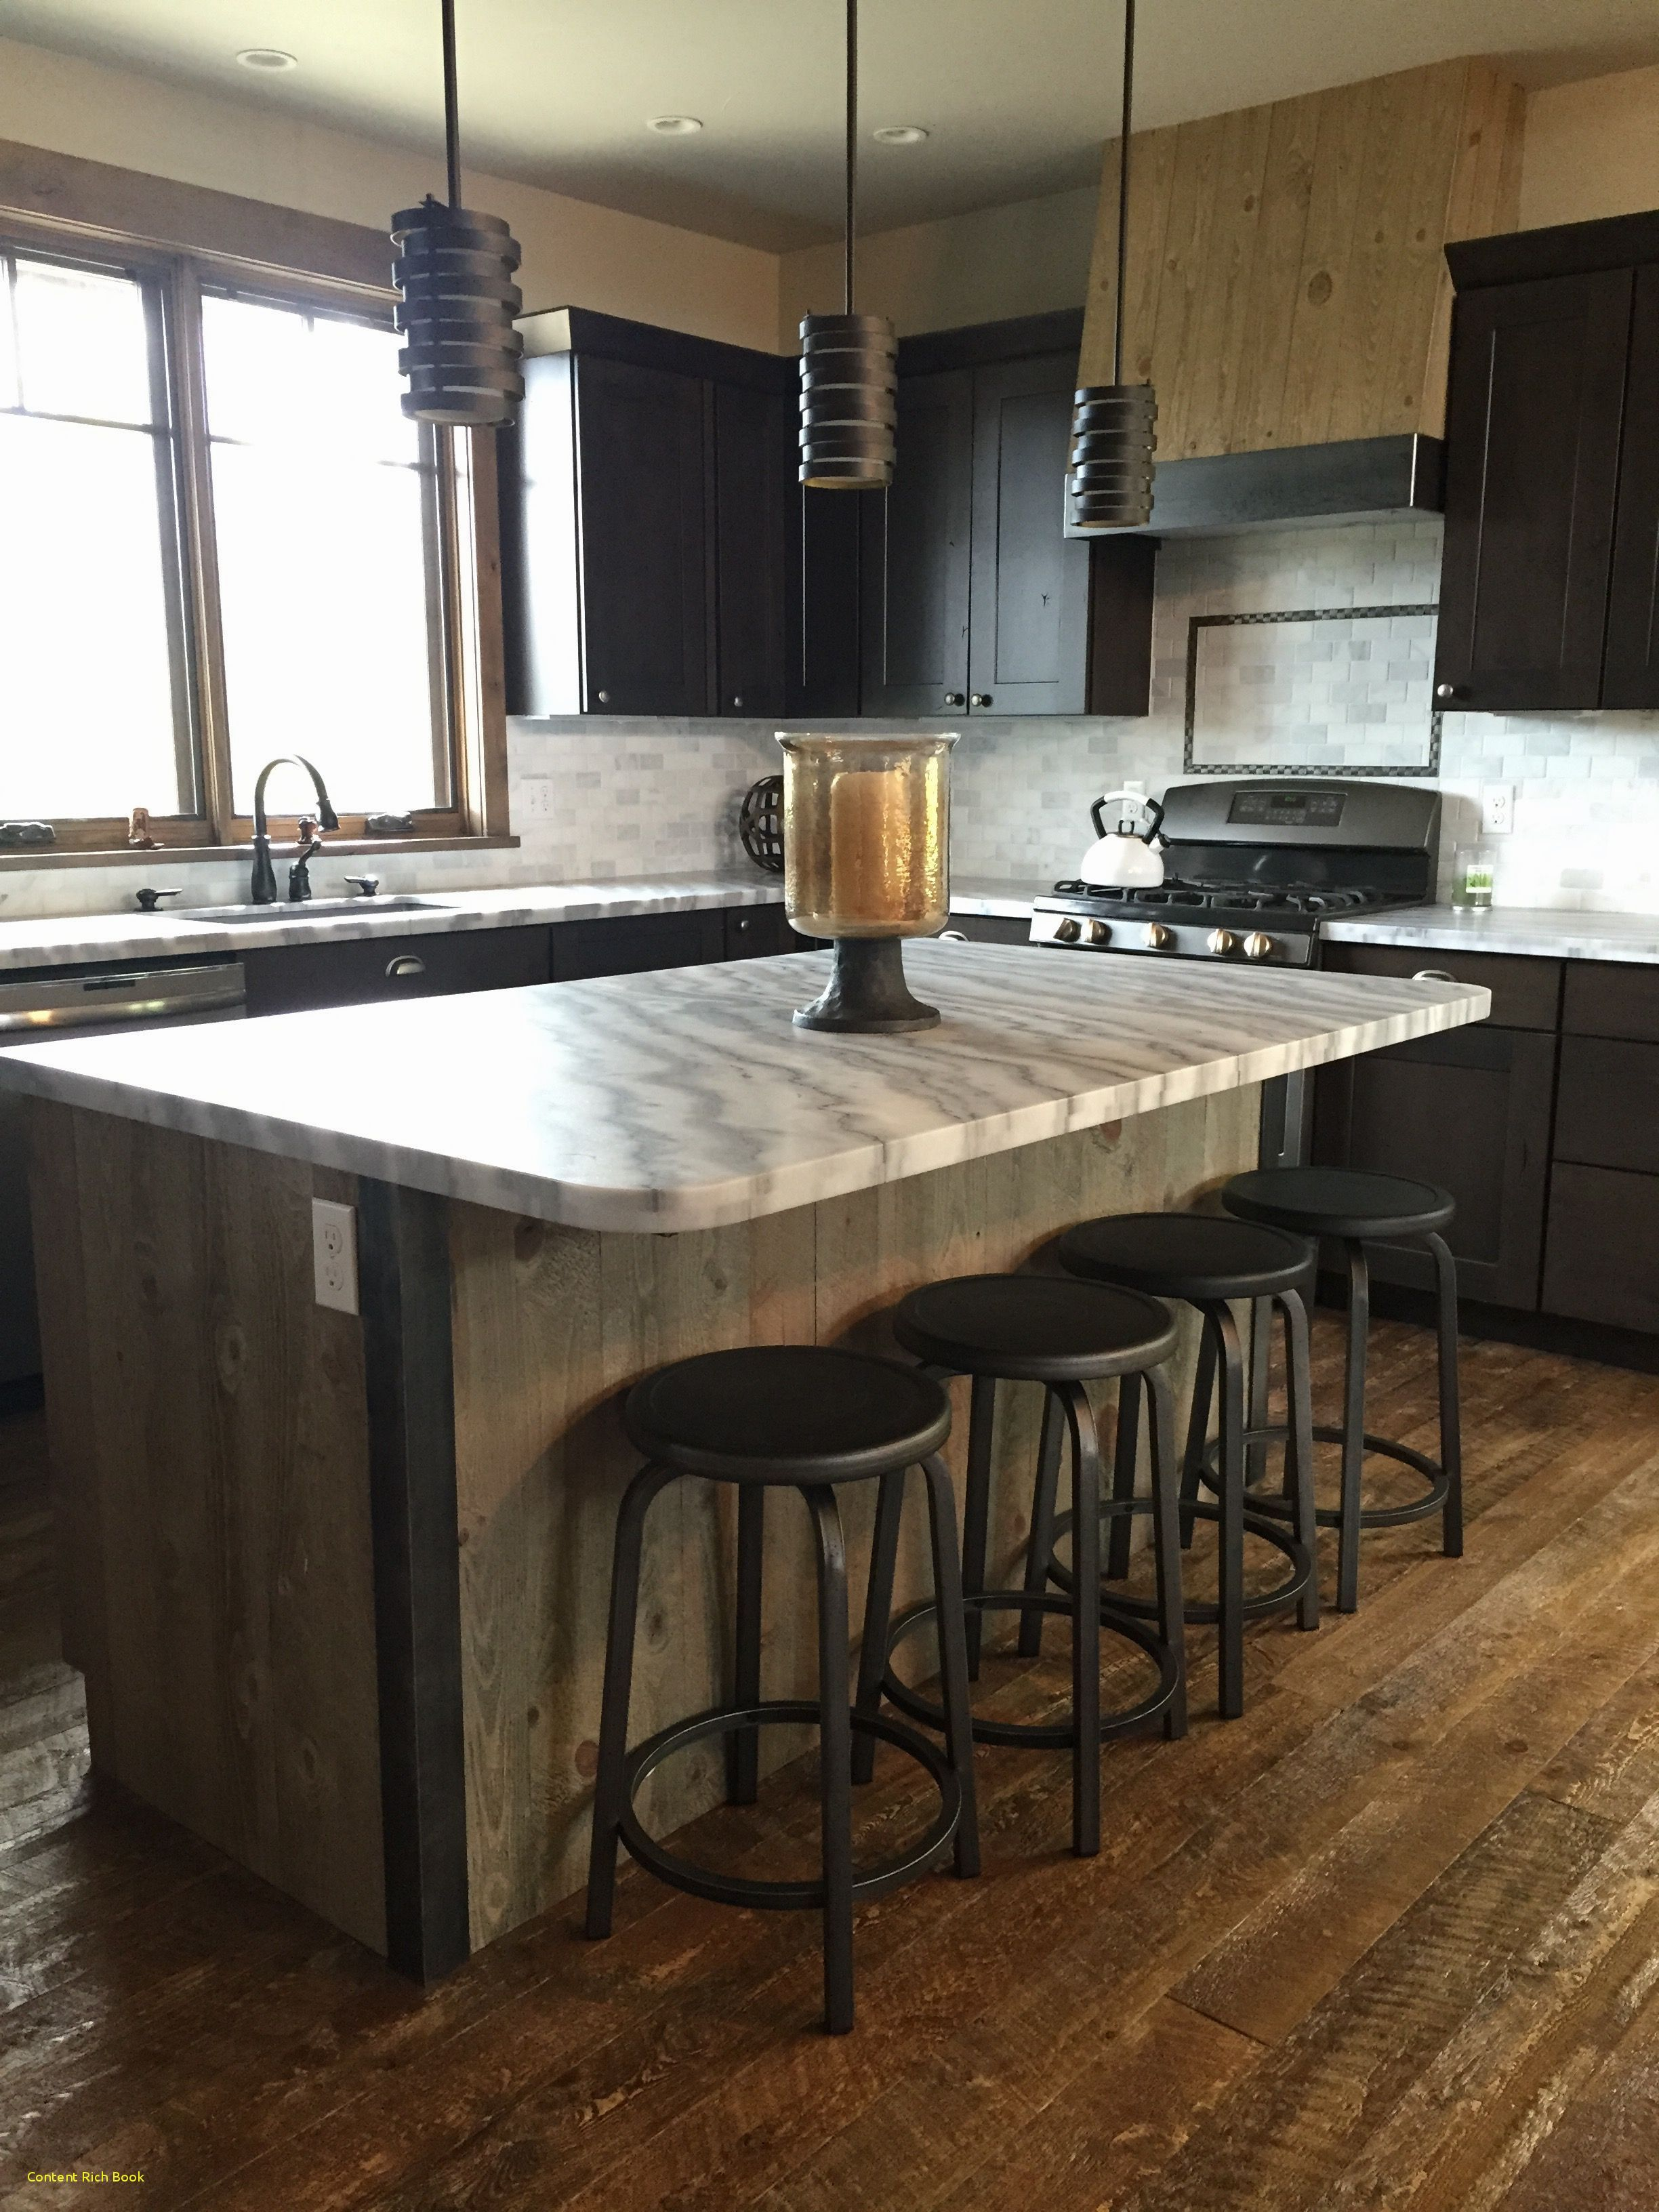 kitchen island with seating for sale fresh oak kitchen island with seating check more at https contentrichbook com oak kitchen 1406